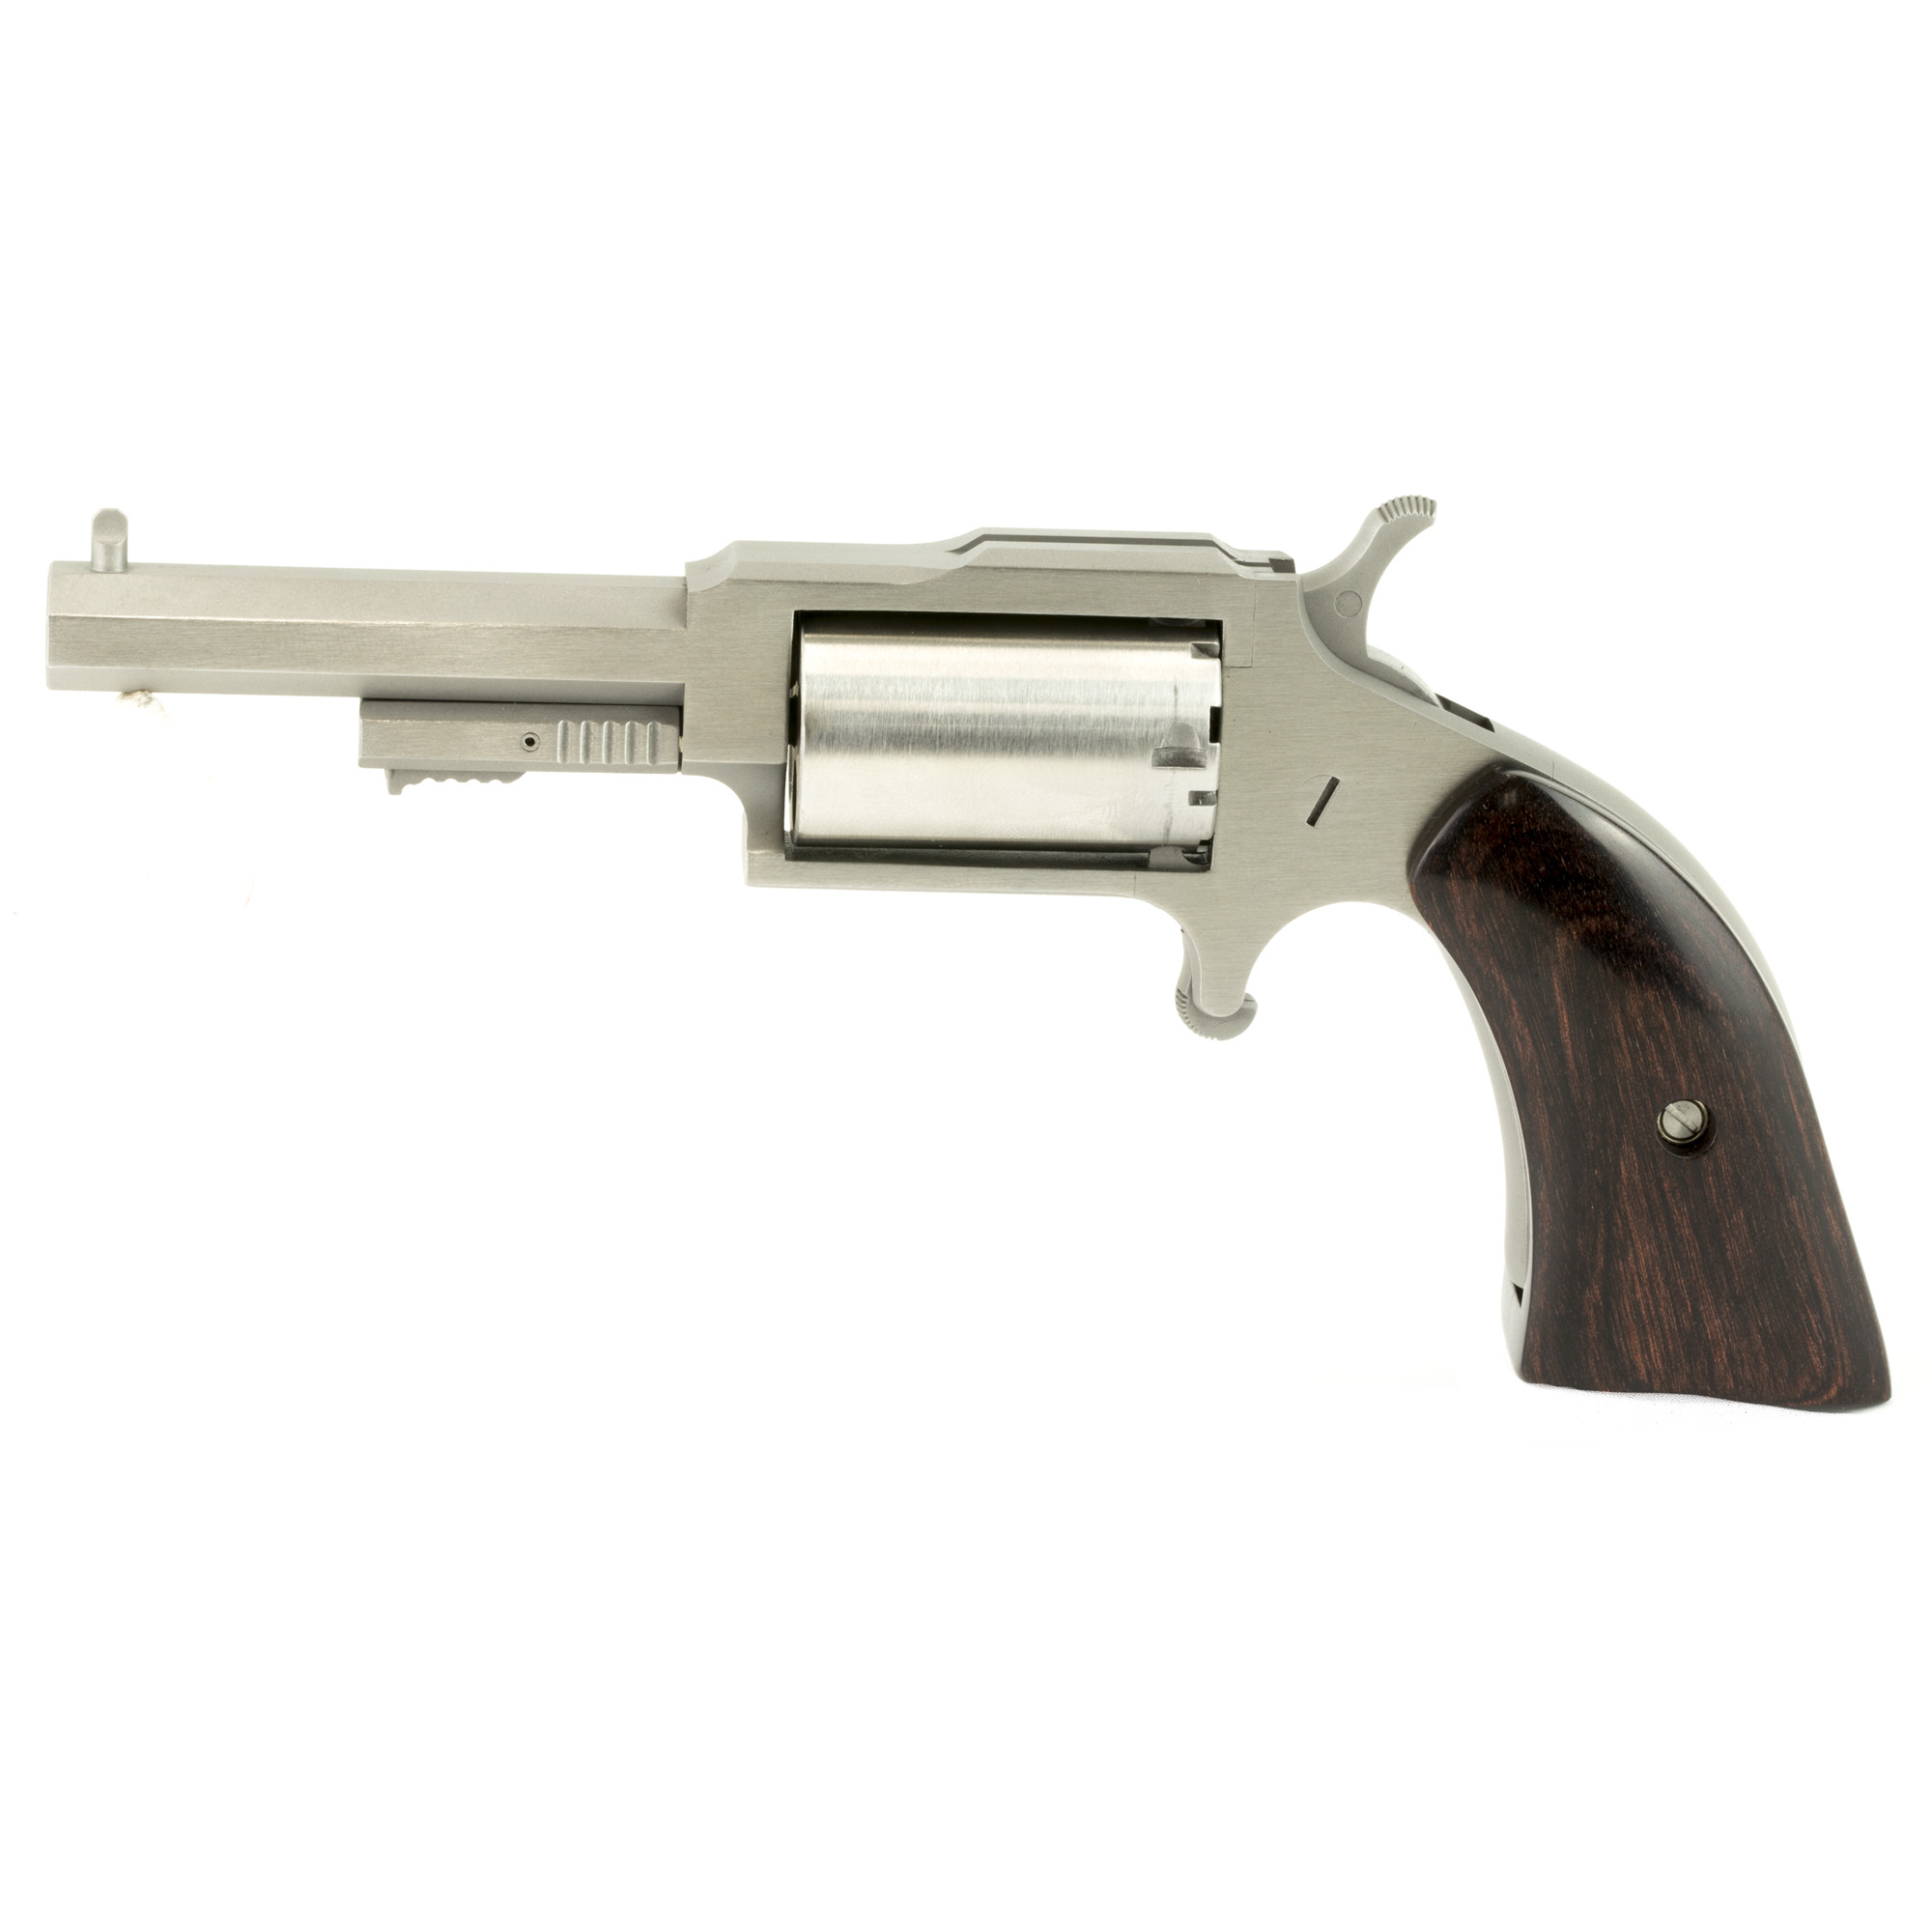 "Their 1860 Series"" also known as ""The Earl"""" ""The Hogleg"" and ""The Sheriff"" are five-shot"" single action"" 1860's- styled mini- revolver chambered in 22 Magnum. Named after the NAA gunsmith who originally developed the product"" with its faux loading lever (which secures the cylinder pin)"" ""The Earl"" resembles a 150-year-old percussion revolver then common in the Old West. With its heavy octagonal barrel"" top strap channel and bead front sight"" ""The Earl"" could become your favorite plinker (pray for the snake"" rodent"" or tin can that dares cross your path!). With available flap-holster made of belt grade leather"" strap on ""The Earl"" for an imaginative trip back to a simpler time. This is the ""Sheriff"" model"" the shortest of the three. It employs the shortest of the heavy octagonal barrel choices. Additionally"" ""The Sheriff"" utilizes push button latch cylinder pin design to enable ease of loading and unloading. Five shot capacity."